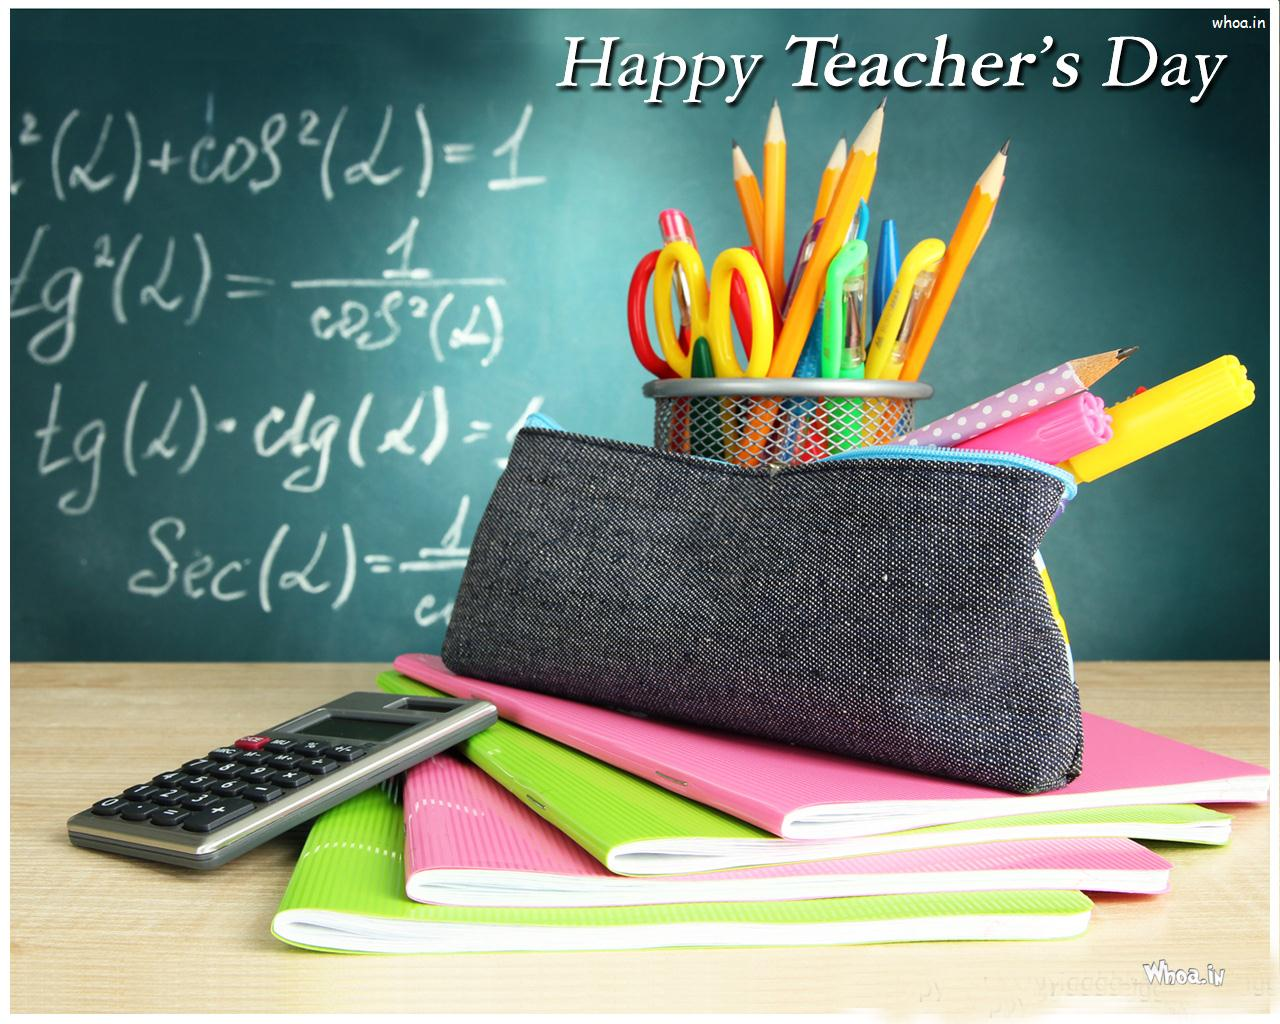 Teachers Day Colorful Wallpaper 1280x1024